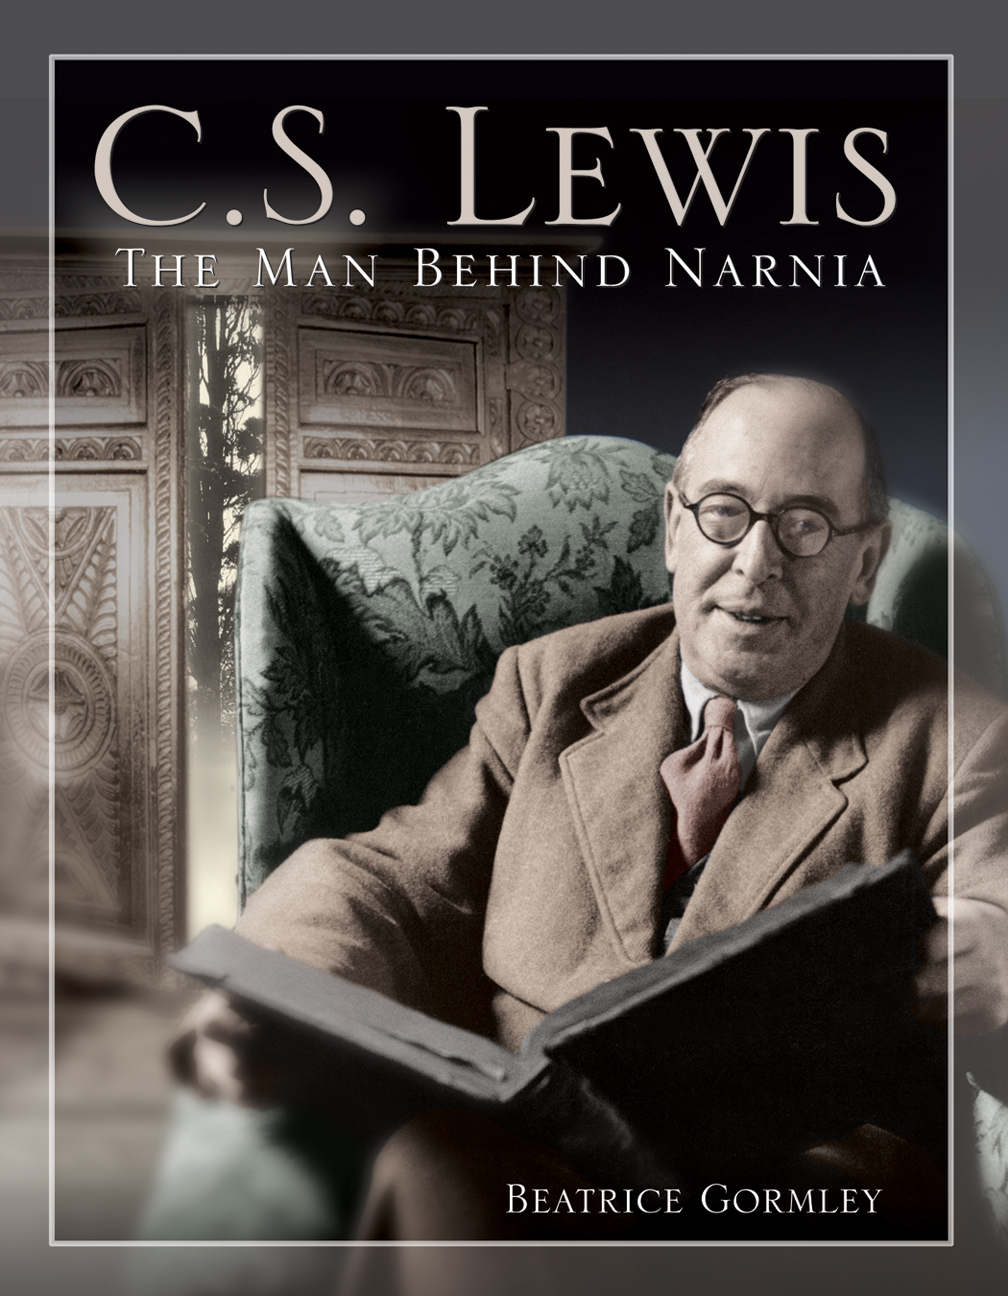 C S Lewis Beatrice Gormley Eerdmans